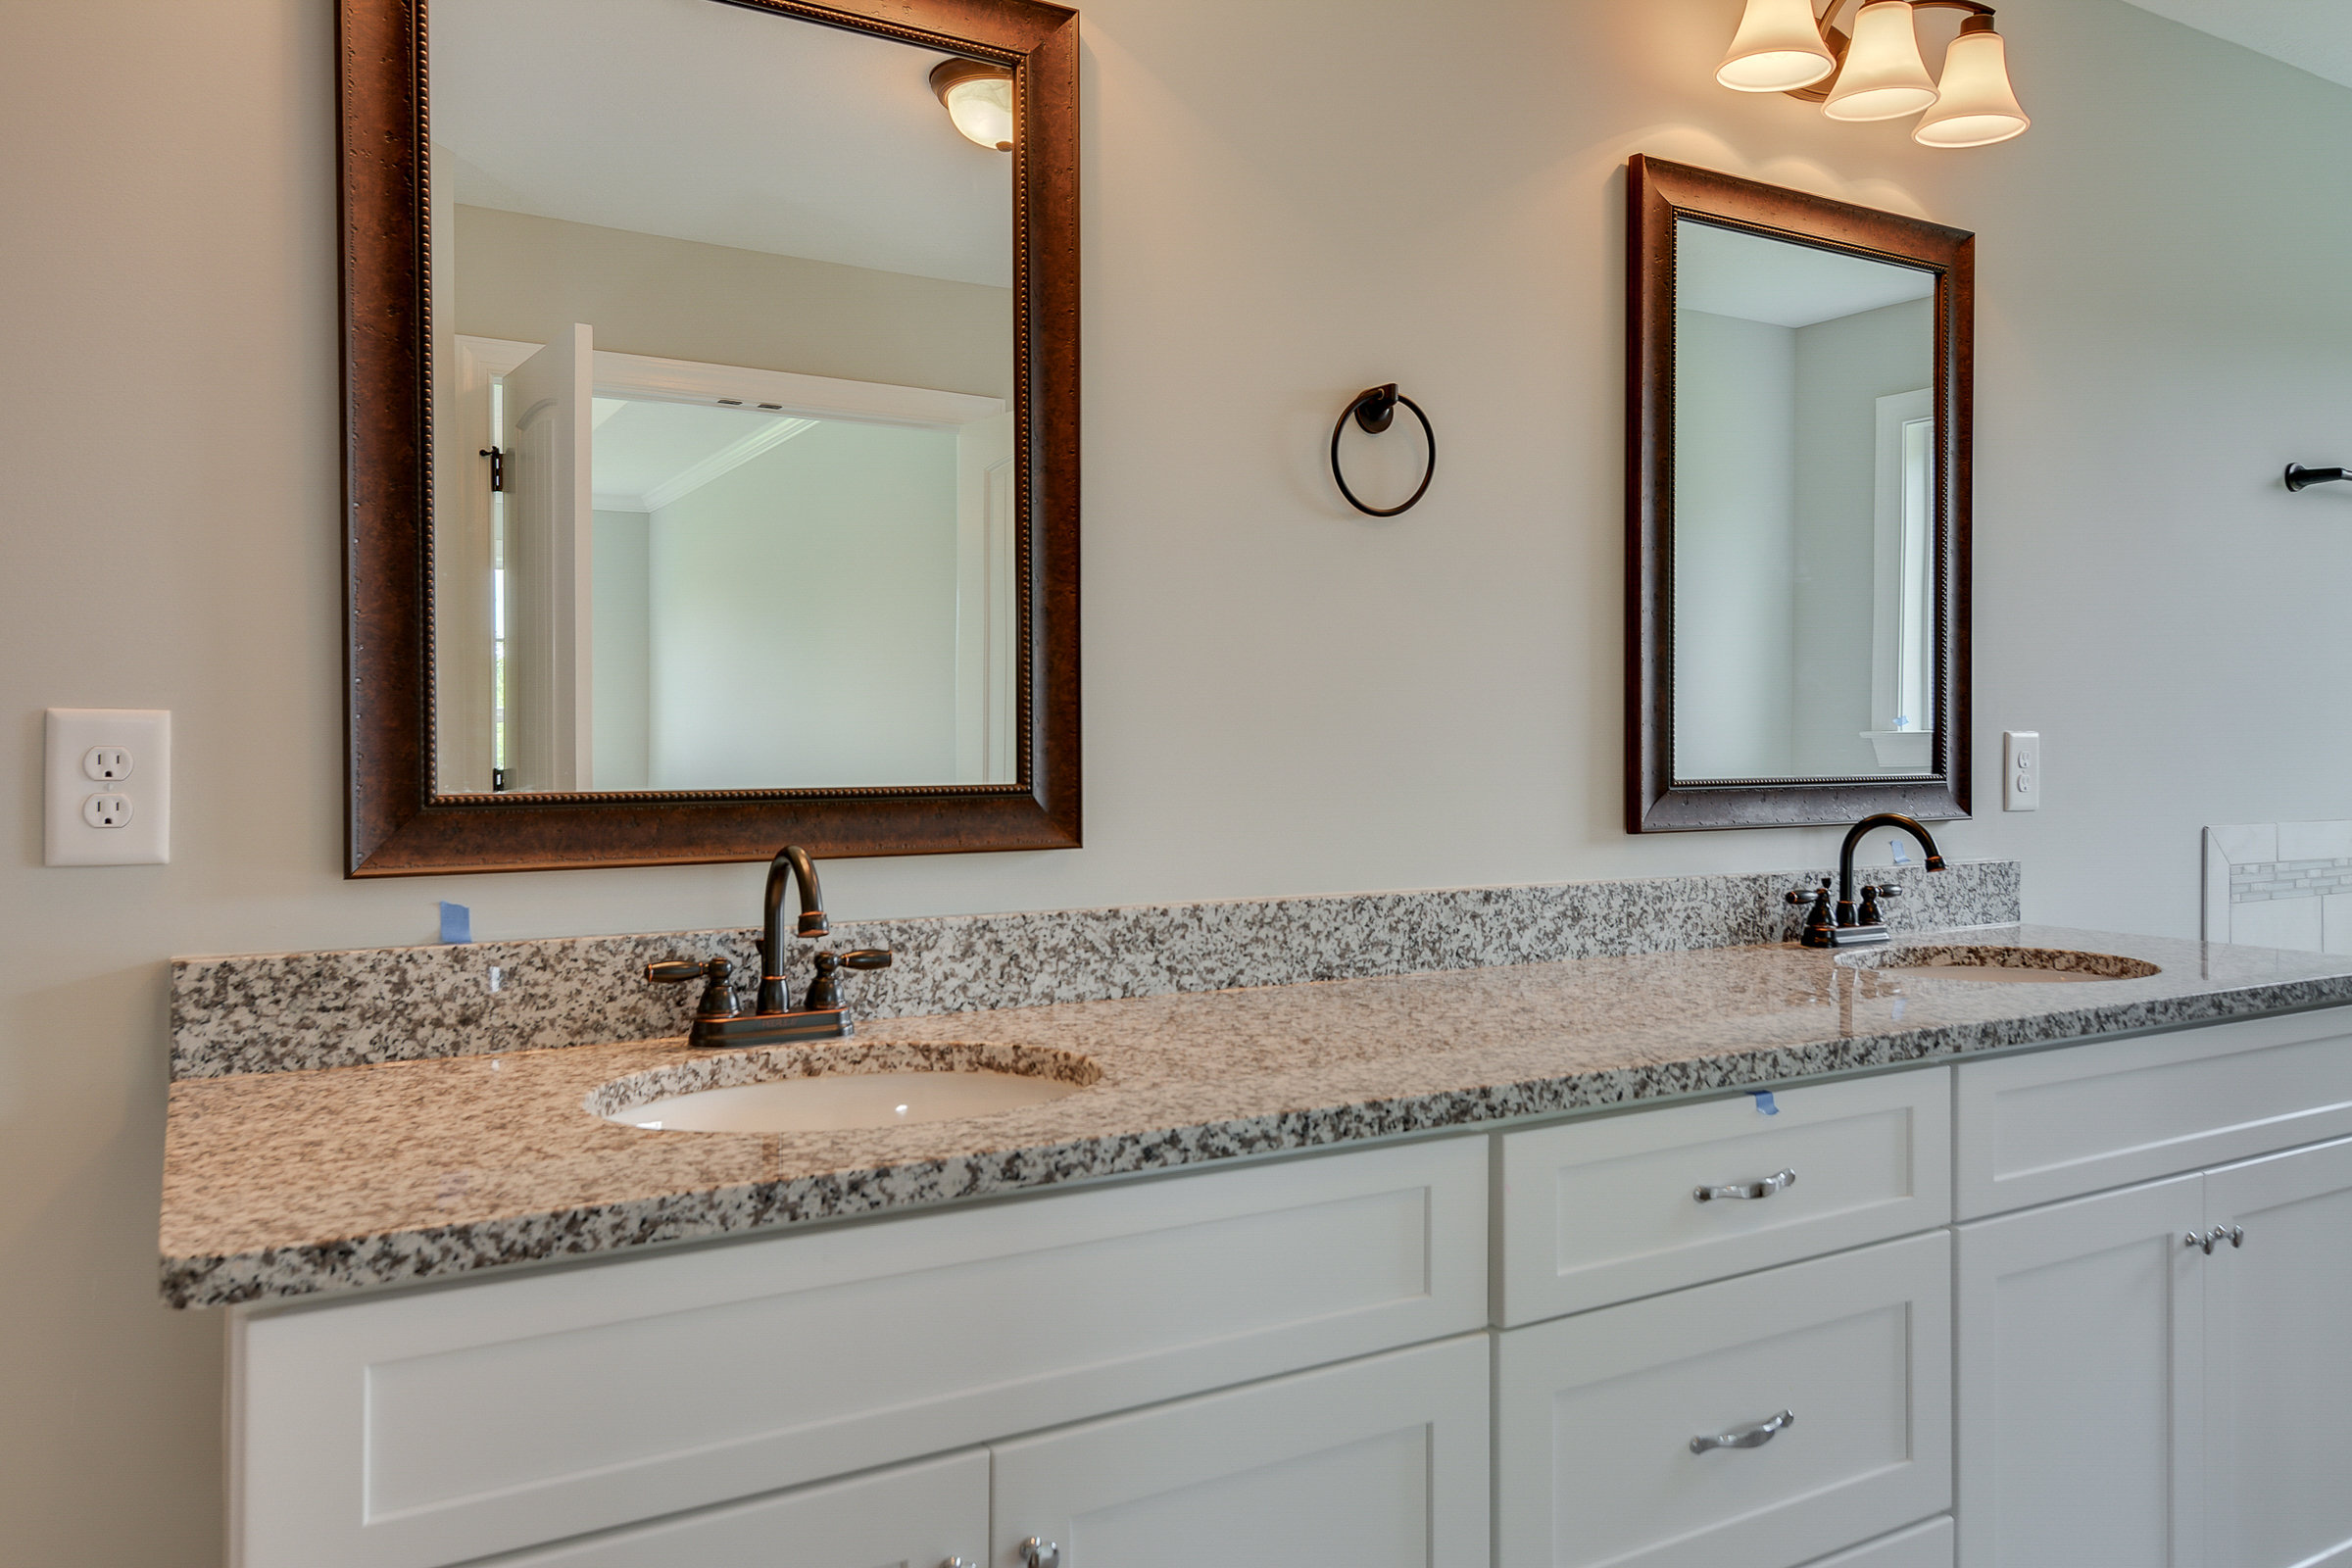 An image of his and her sinks with mirrors in Kelarie home.